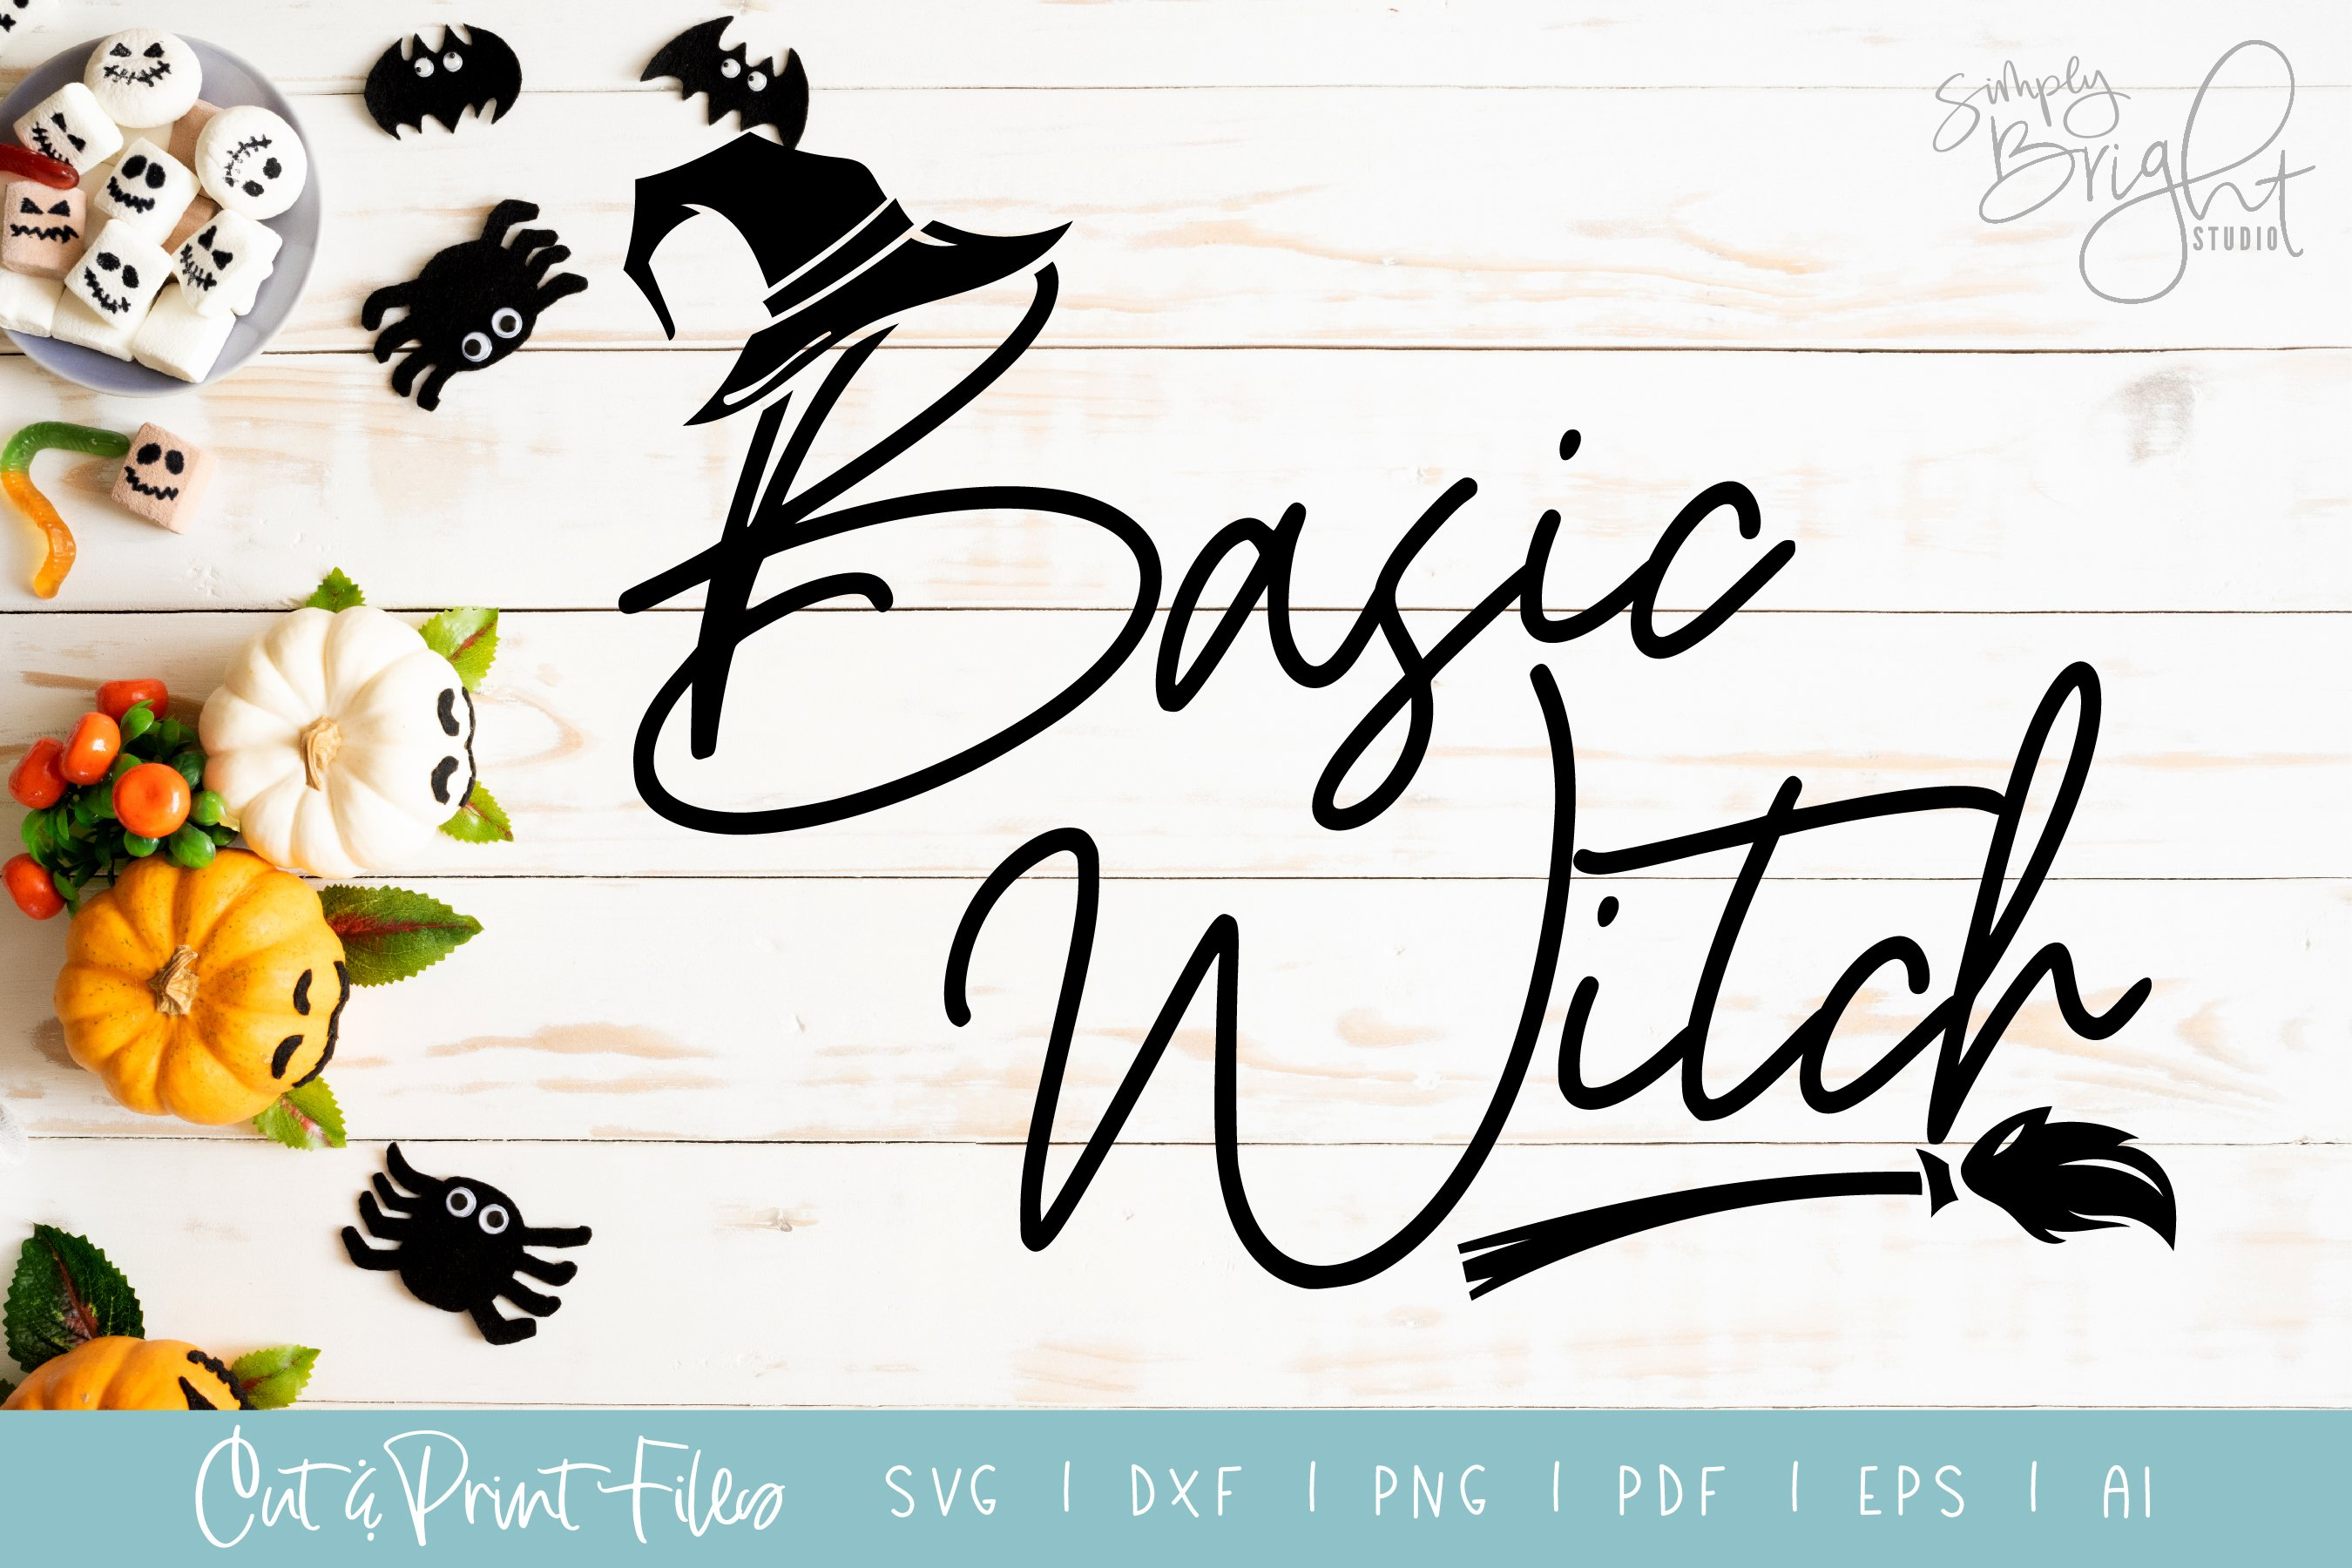 Basic Witch Svg Cut Print Files Pre Designed Illustrator Graphics Creative Market